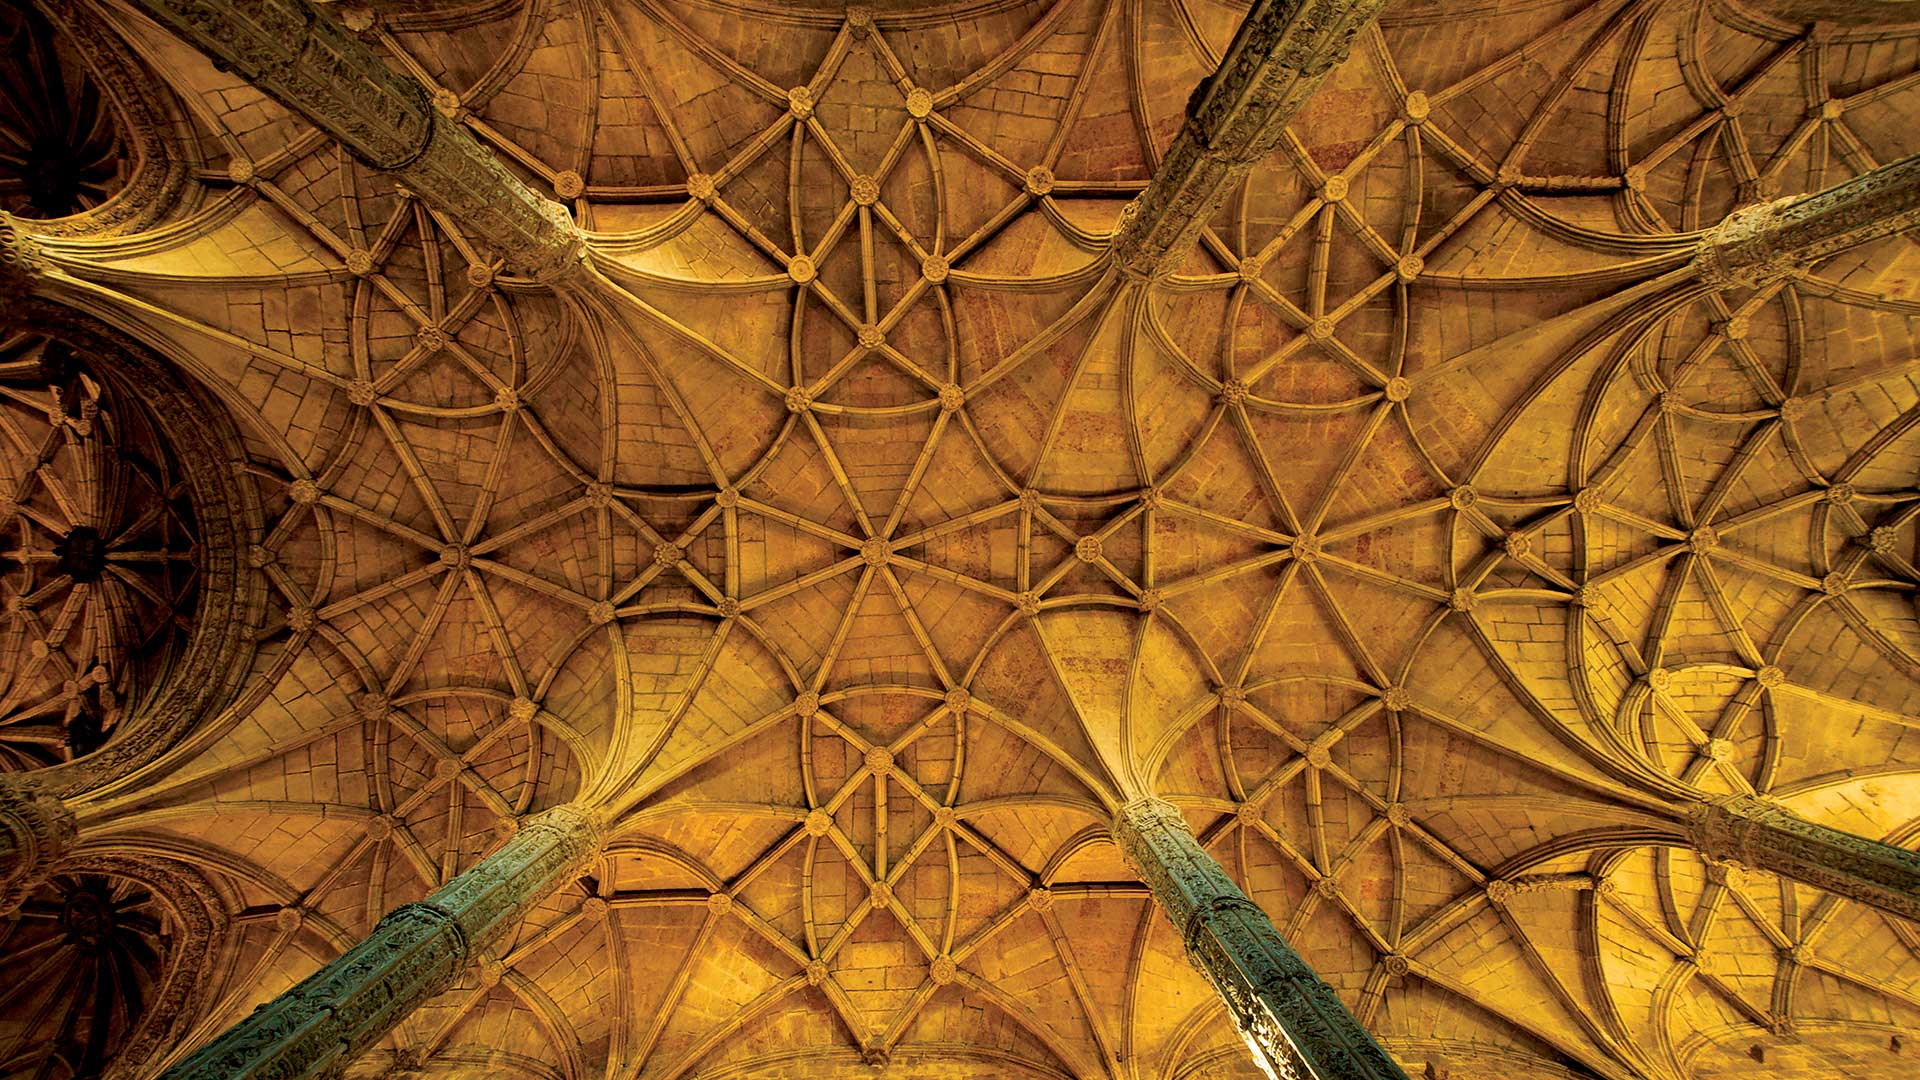 Looking up at the vaulted ceiling of Lisbon's Gothic cathedral.